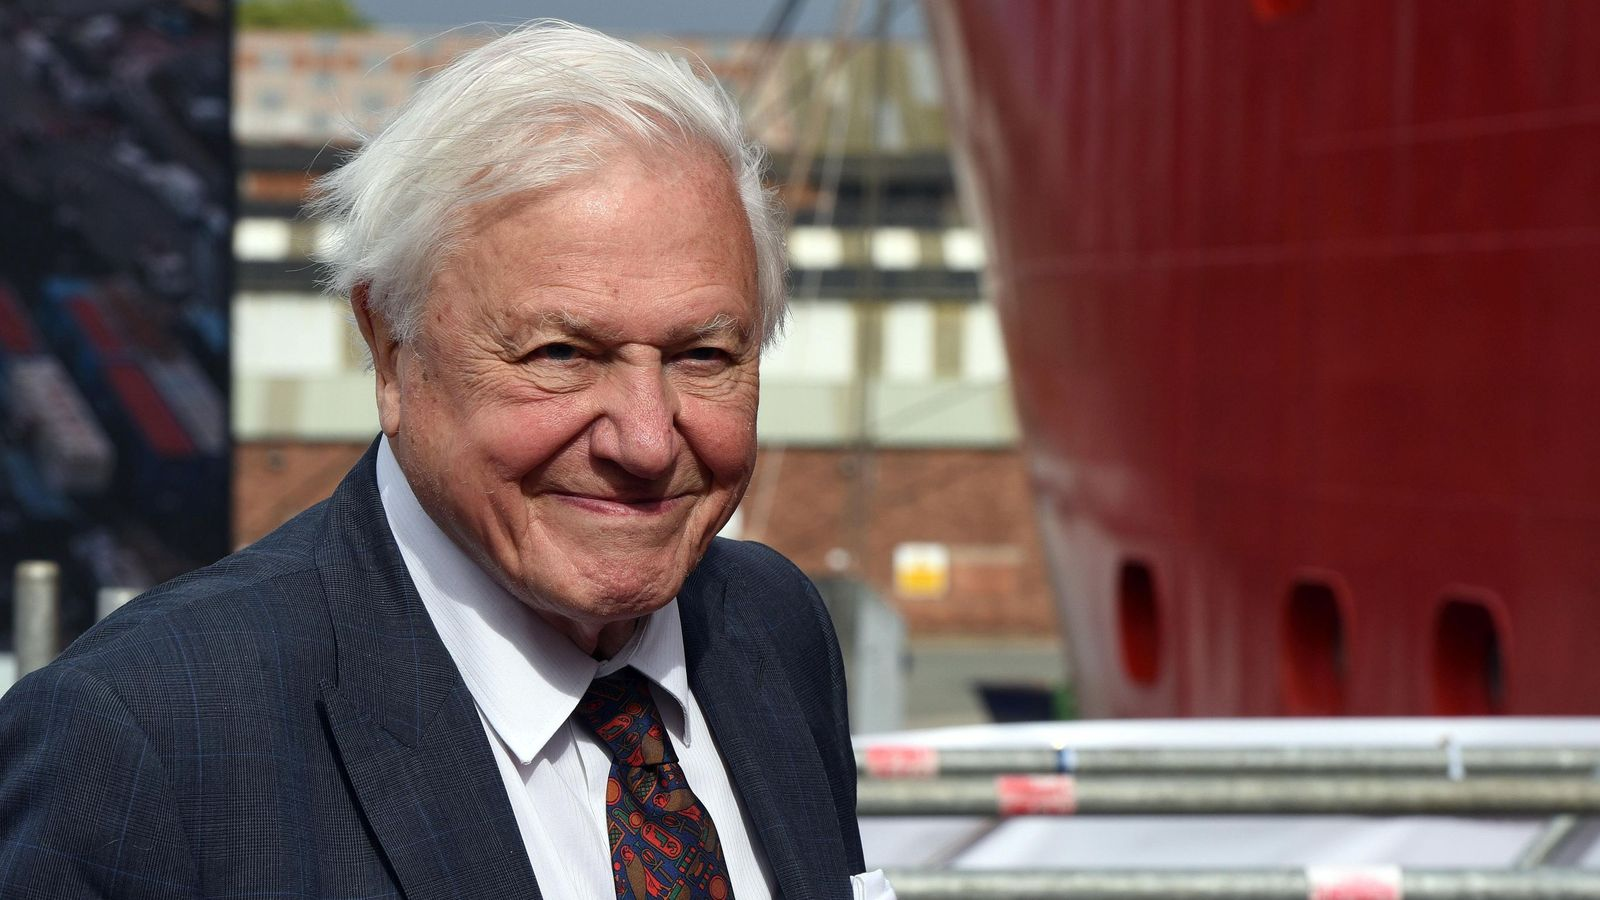 Attenborough: Pandemic could make nations realise climate issue depends on co-operation thumbnail